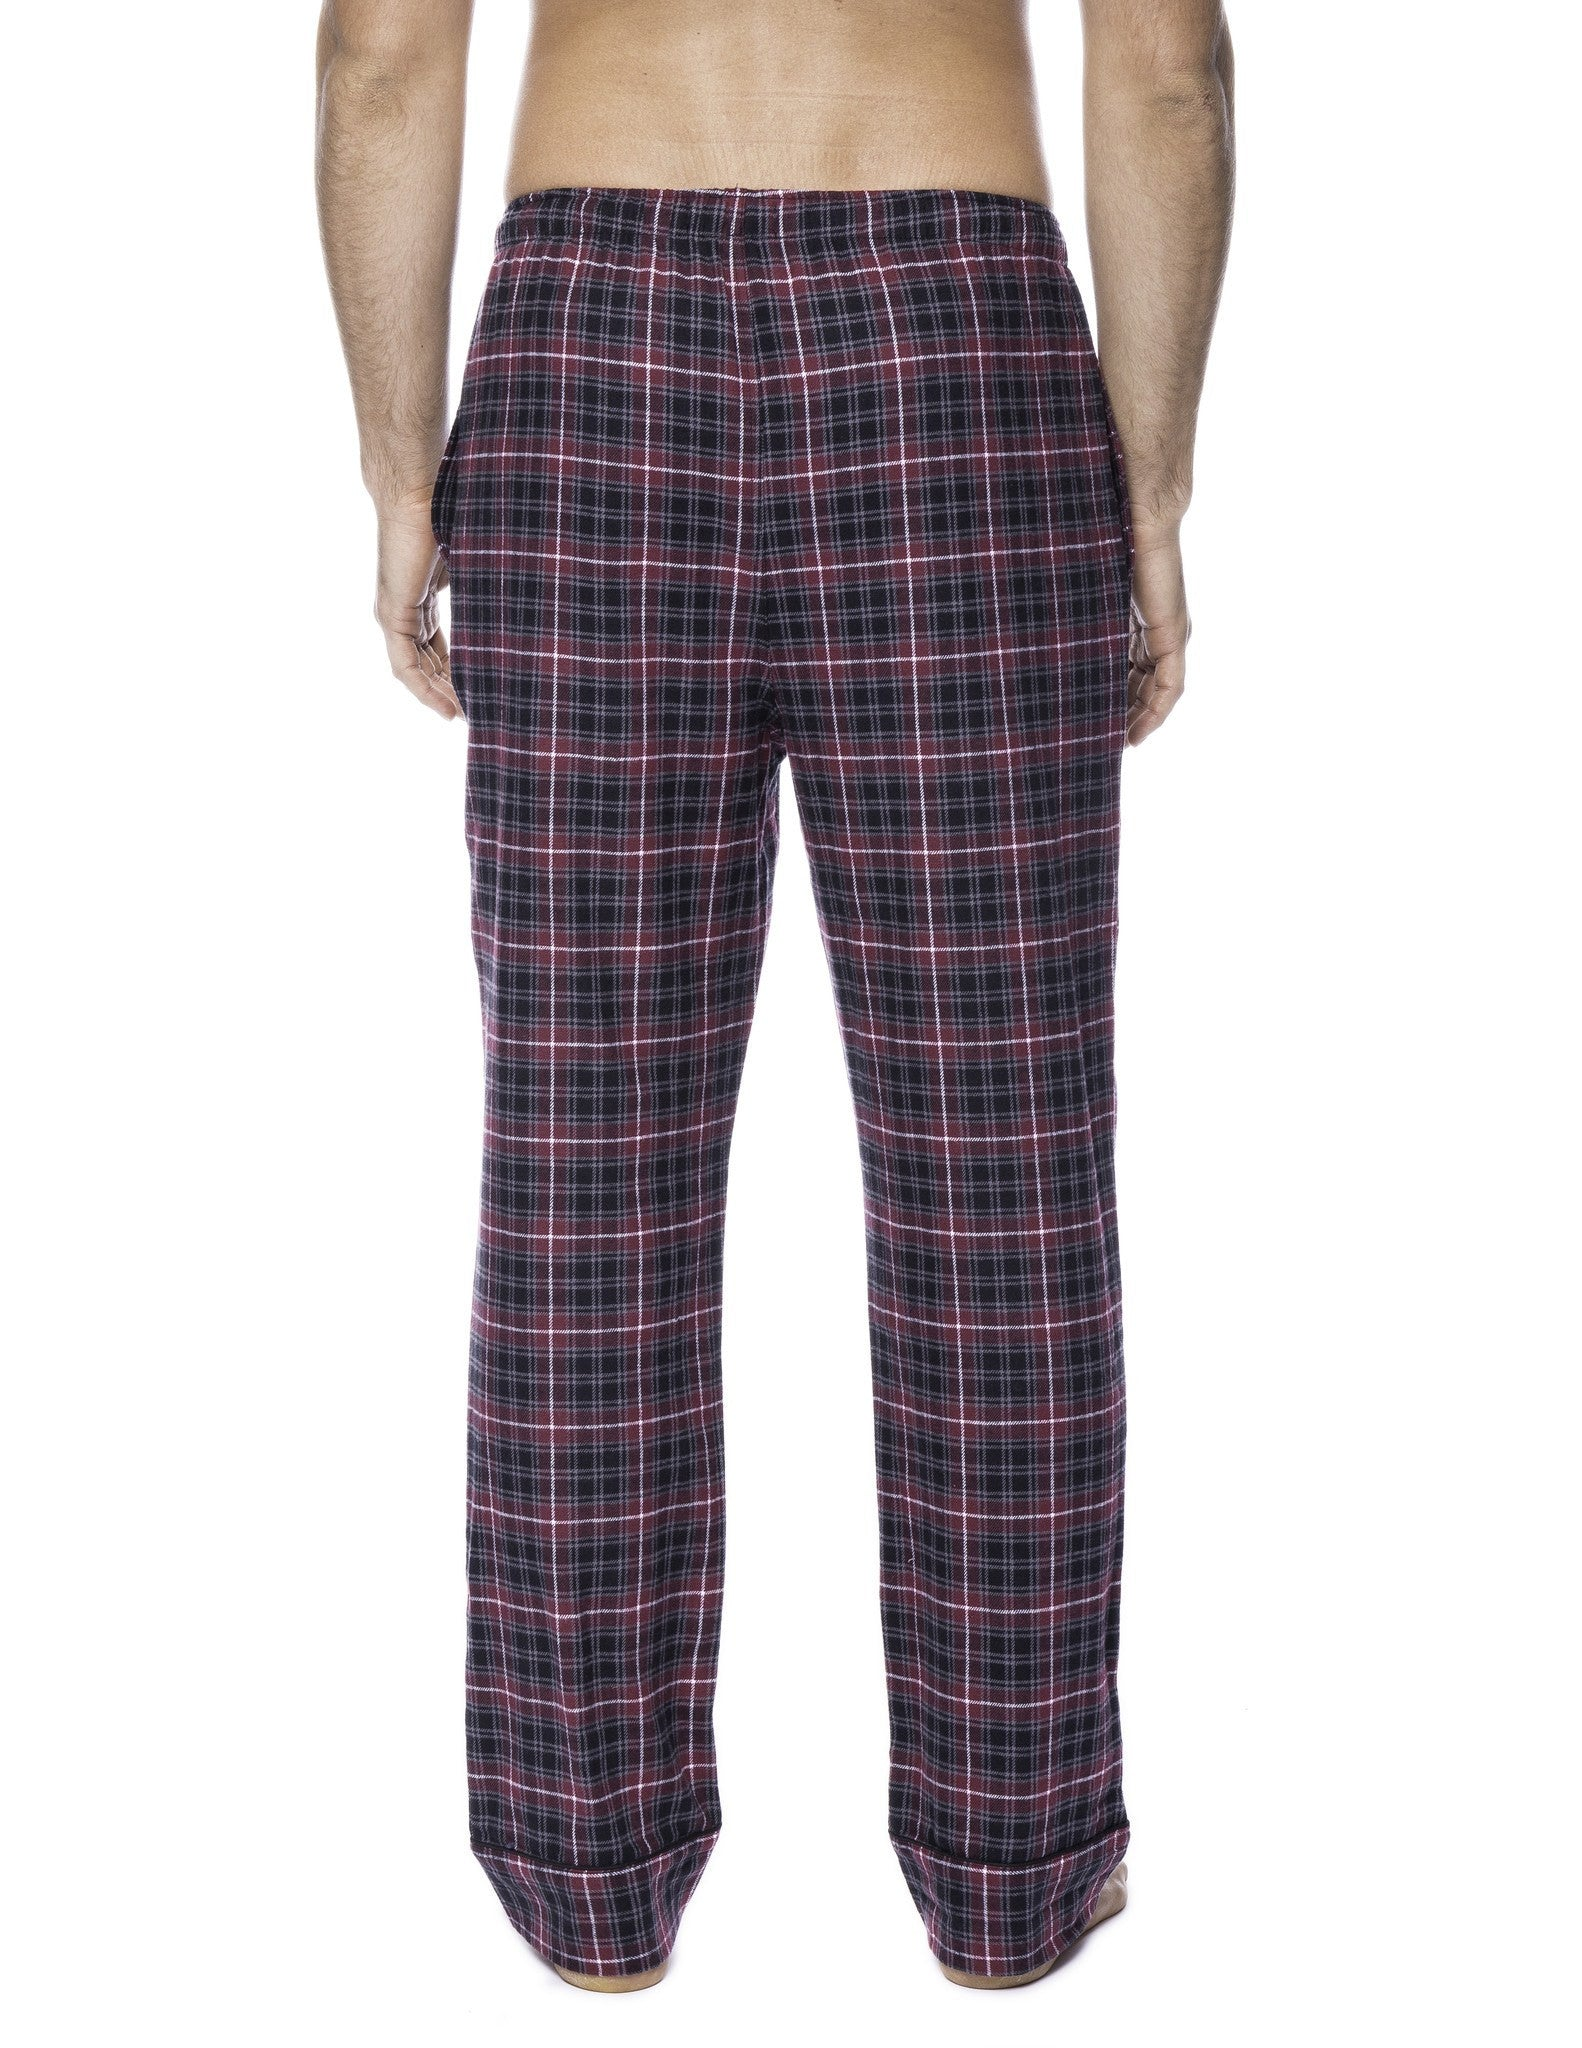 2-Pack (Plaid Burgundy-Grey/Navy-Black)